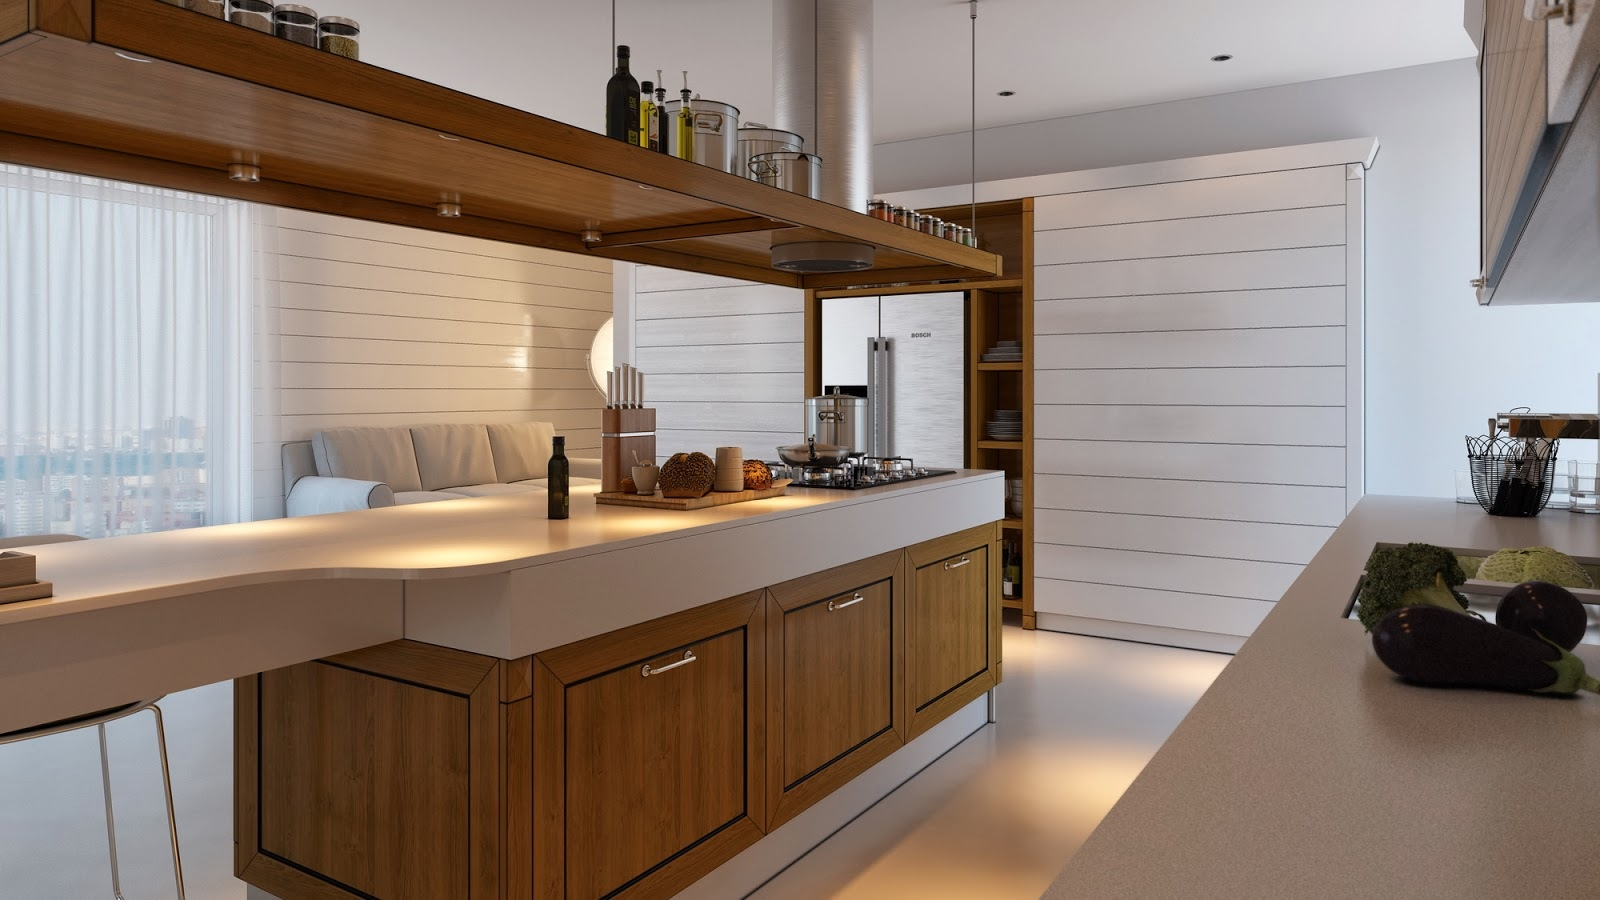 Artem Evstigneev Minimalist Kitchen Design With Brown Color